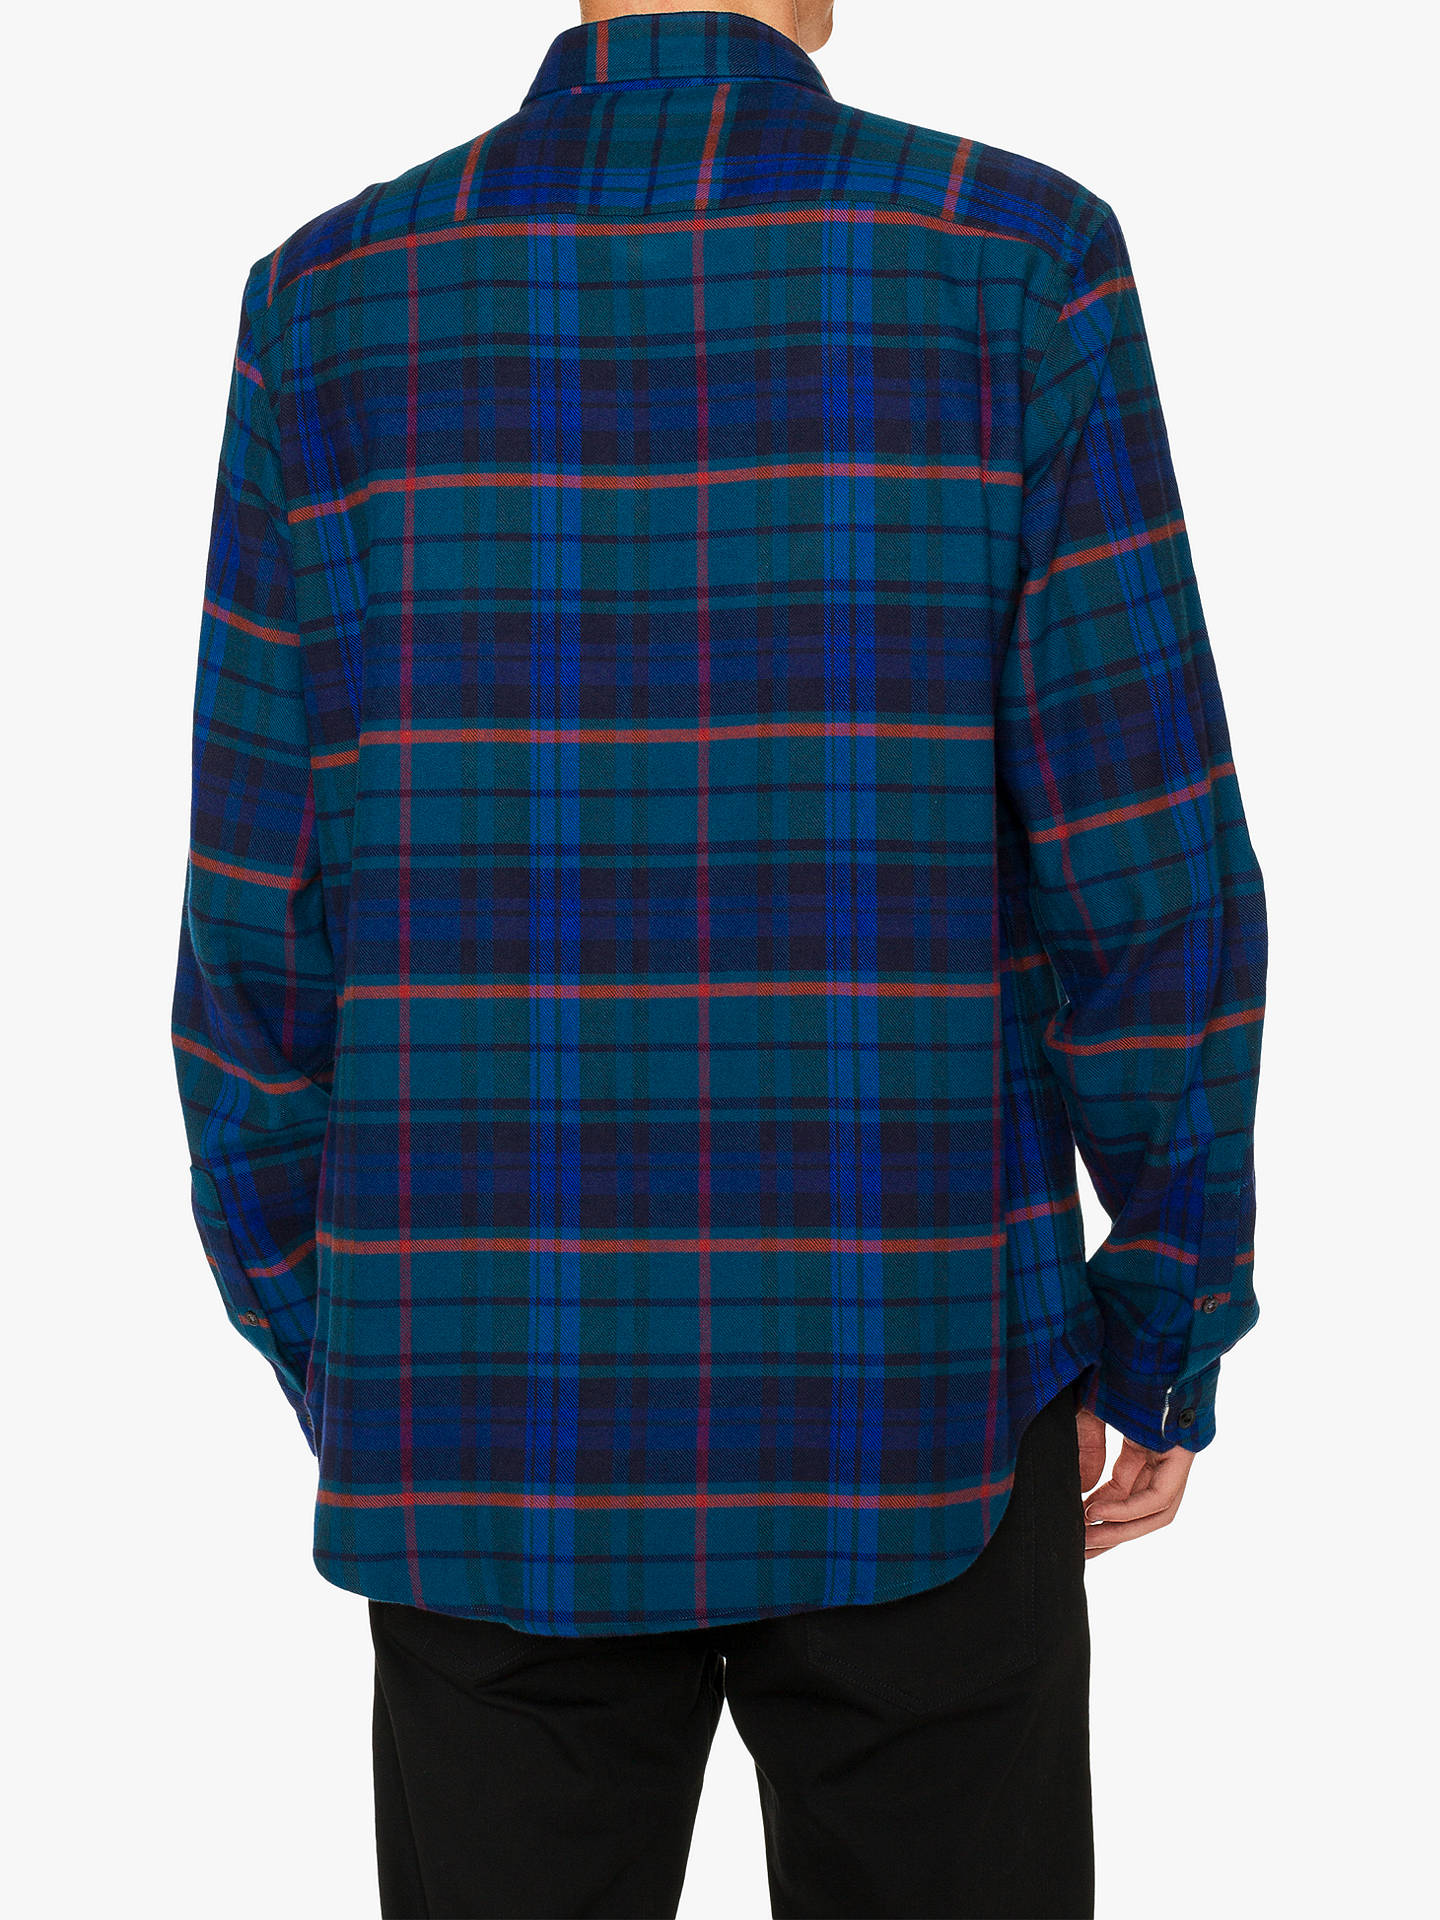 Buy PS Paul Smith Casual Fit Flannel Shirt, Teal, M Online at johnlewis.com